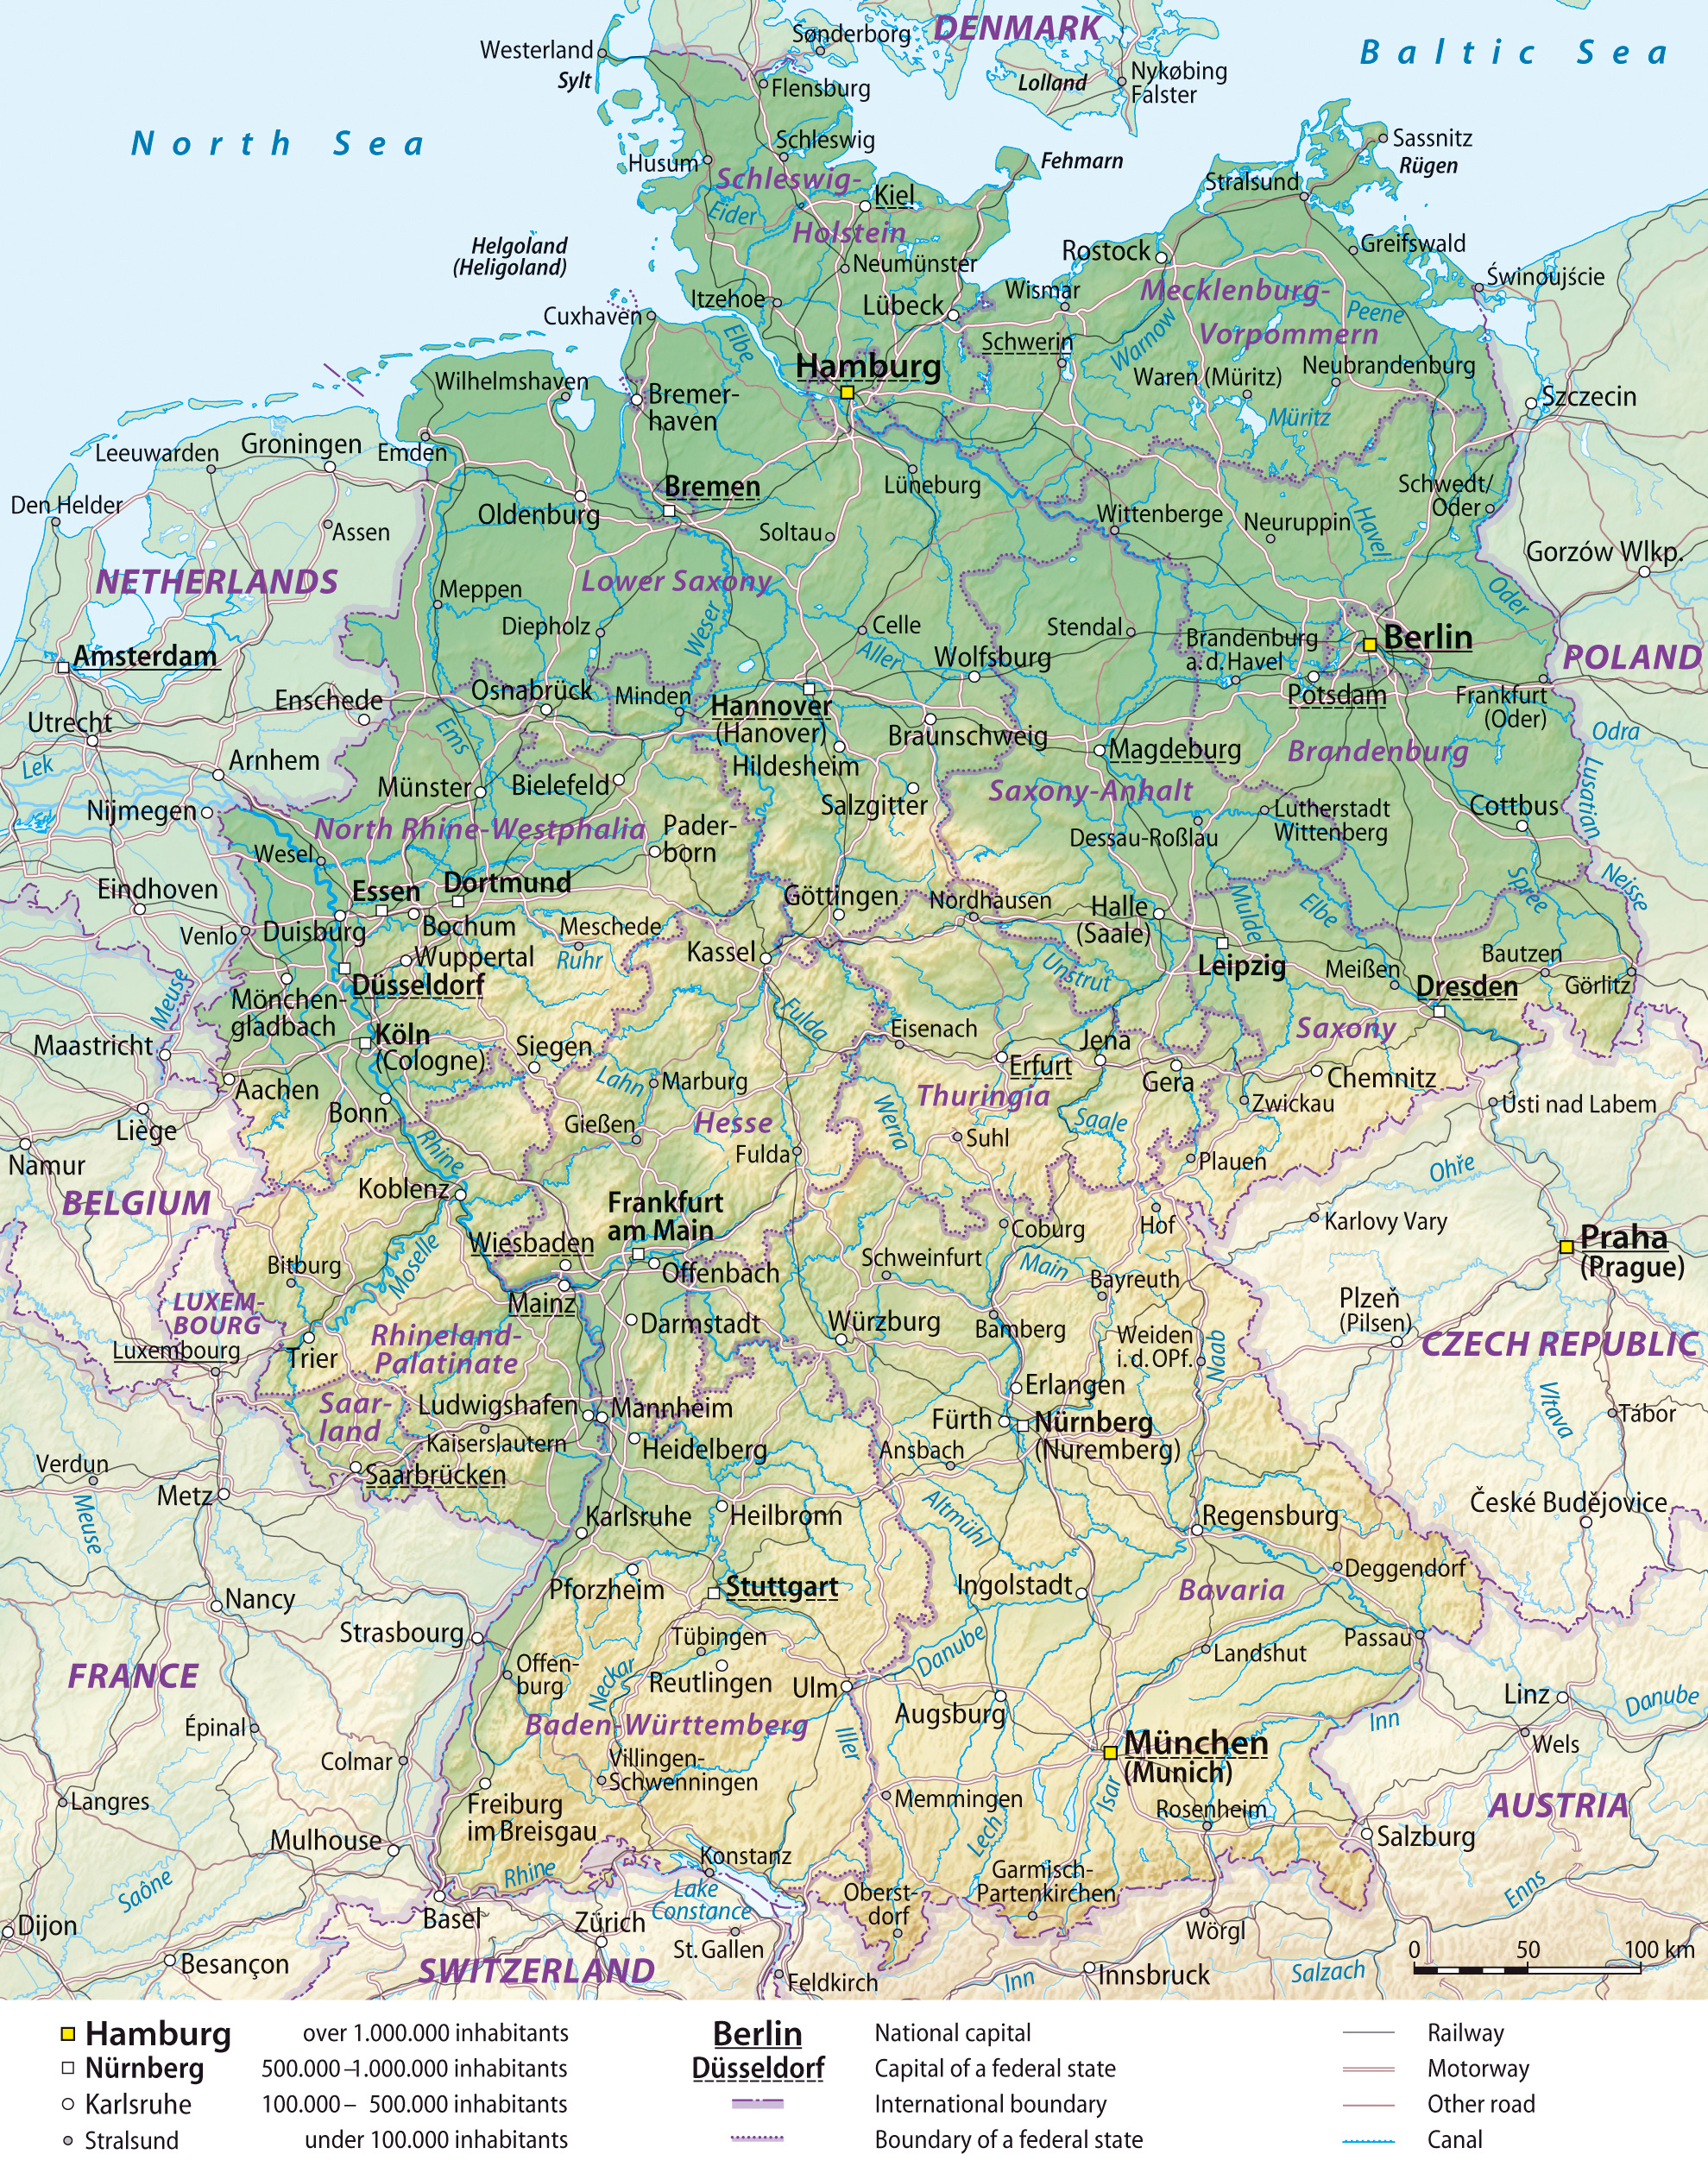 Elevation Map Of Germany.Large Detailed Elevation Map Of Germany With Administrative